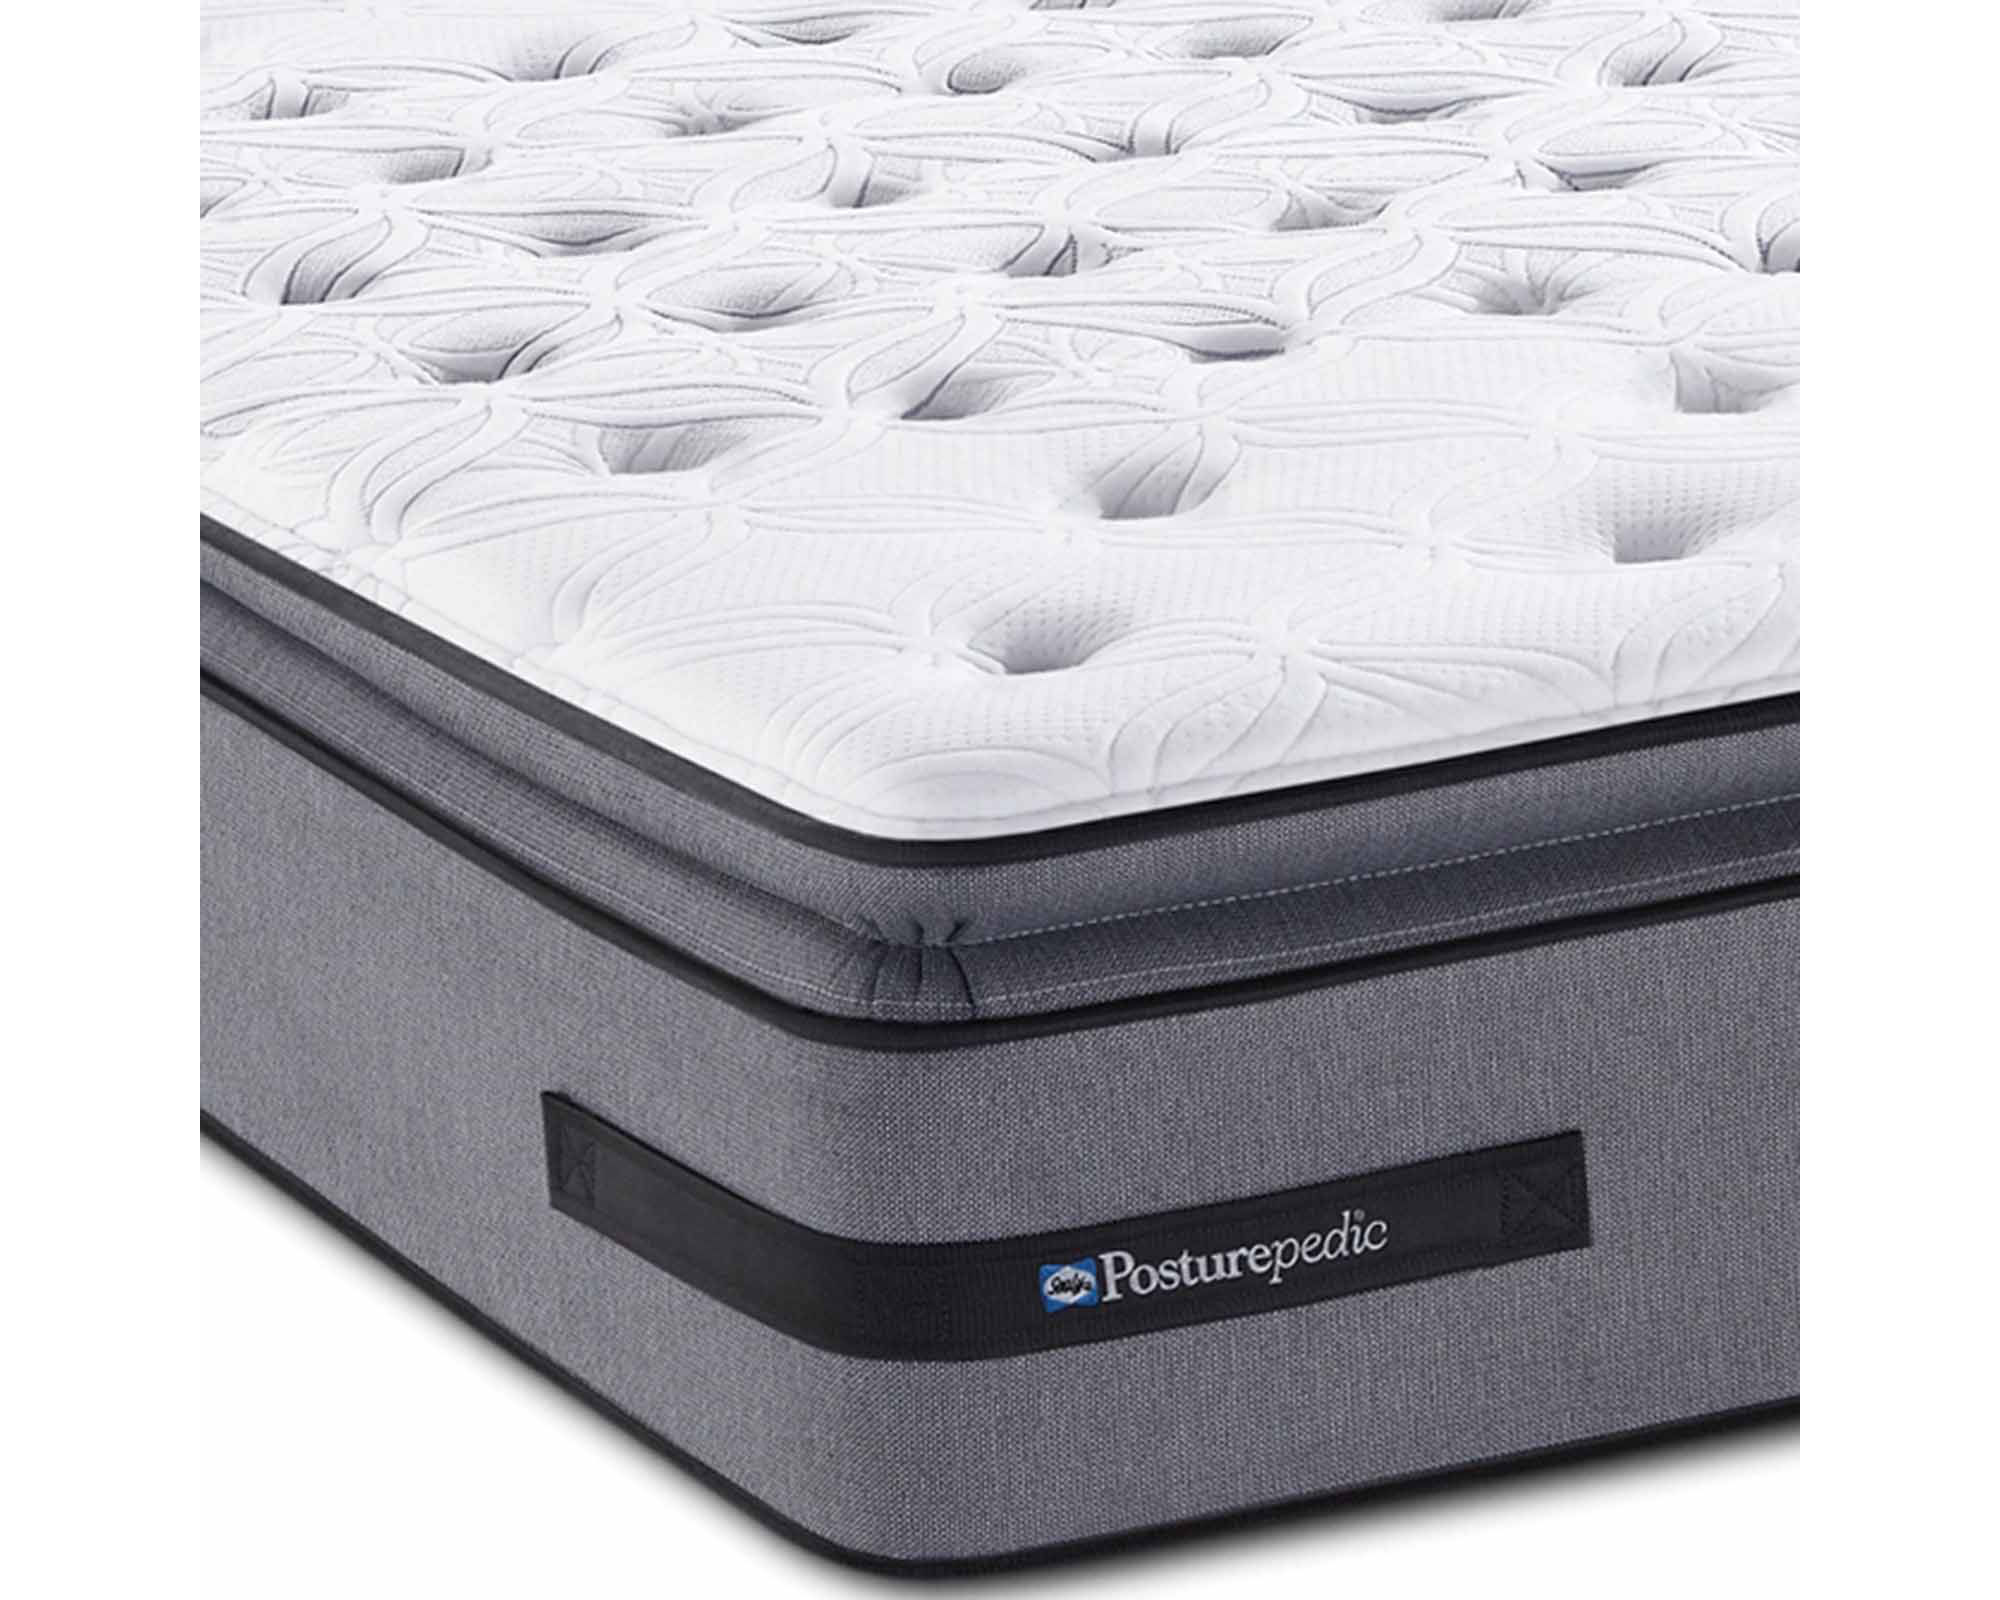 Sealy Posturepedic Solia Bay Firm Euro Pillow-Top - Mattress Only